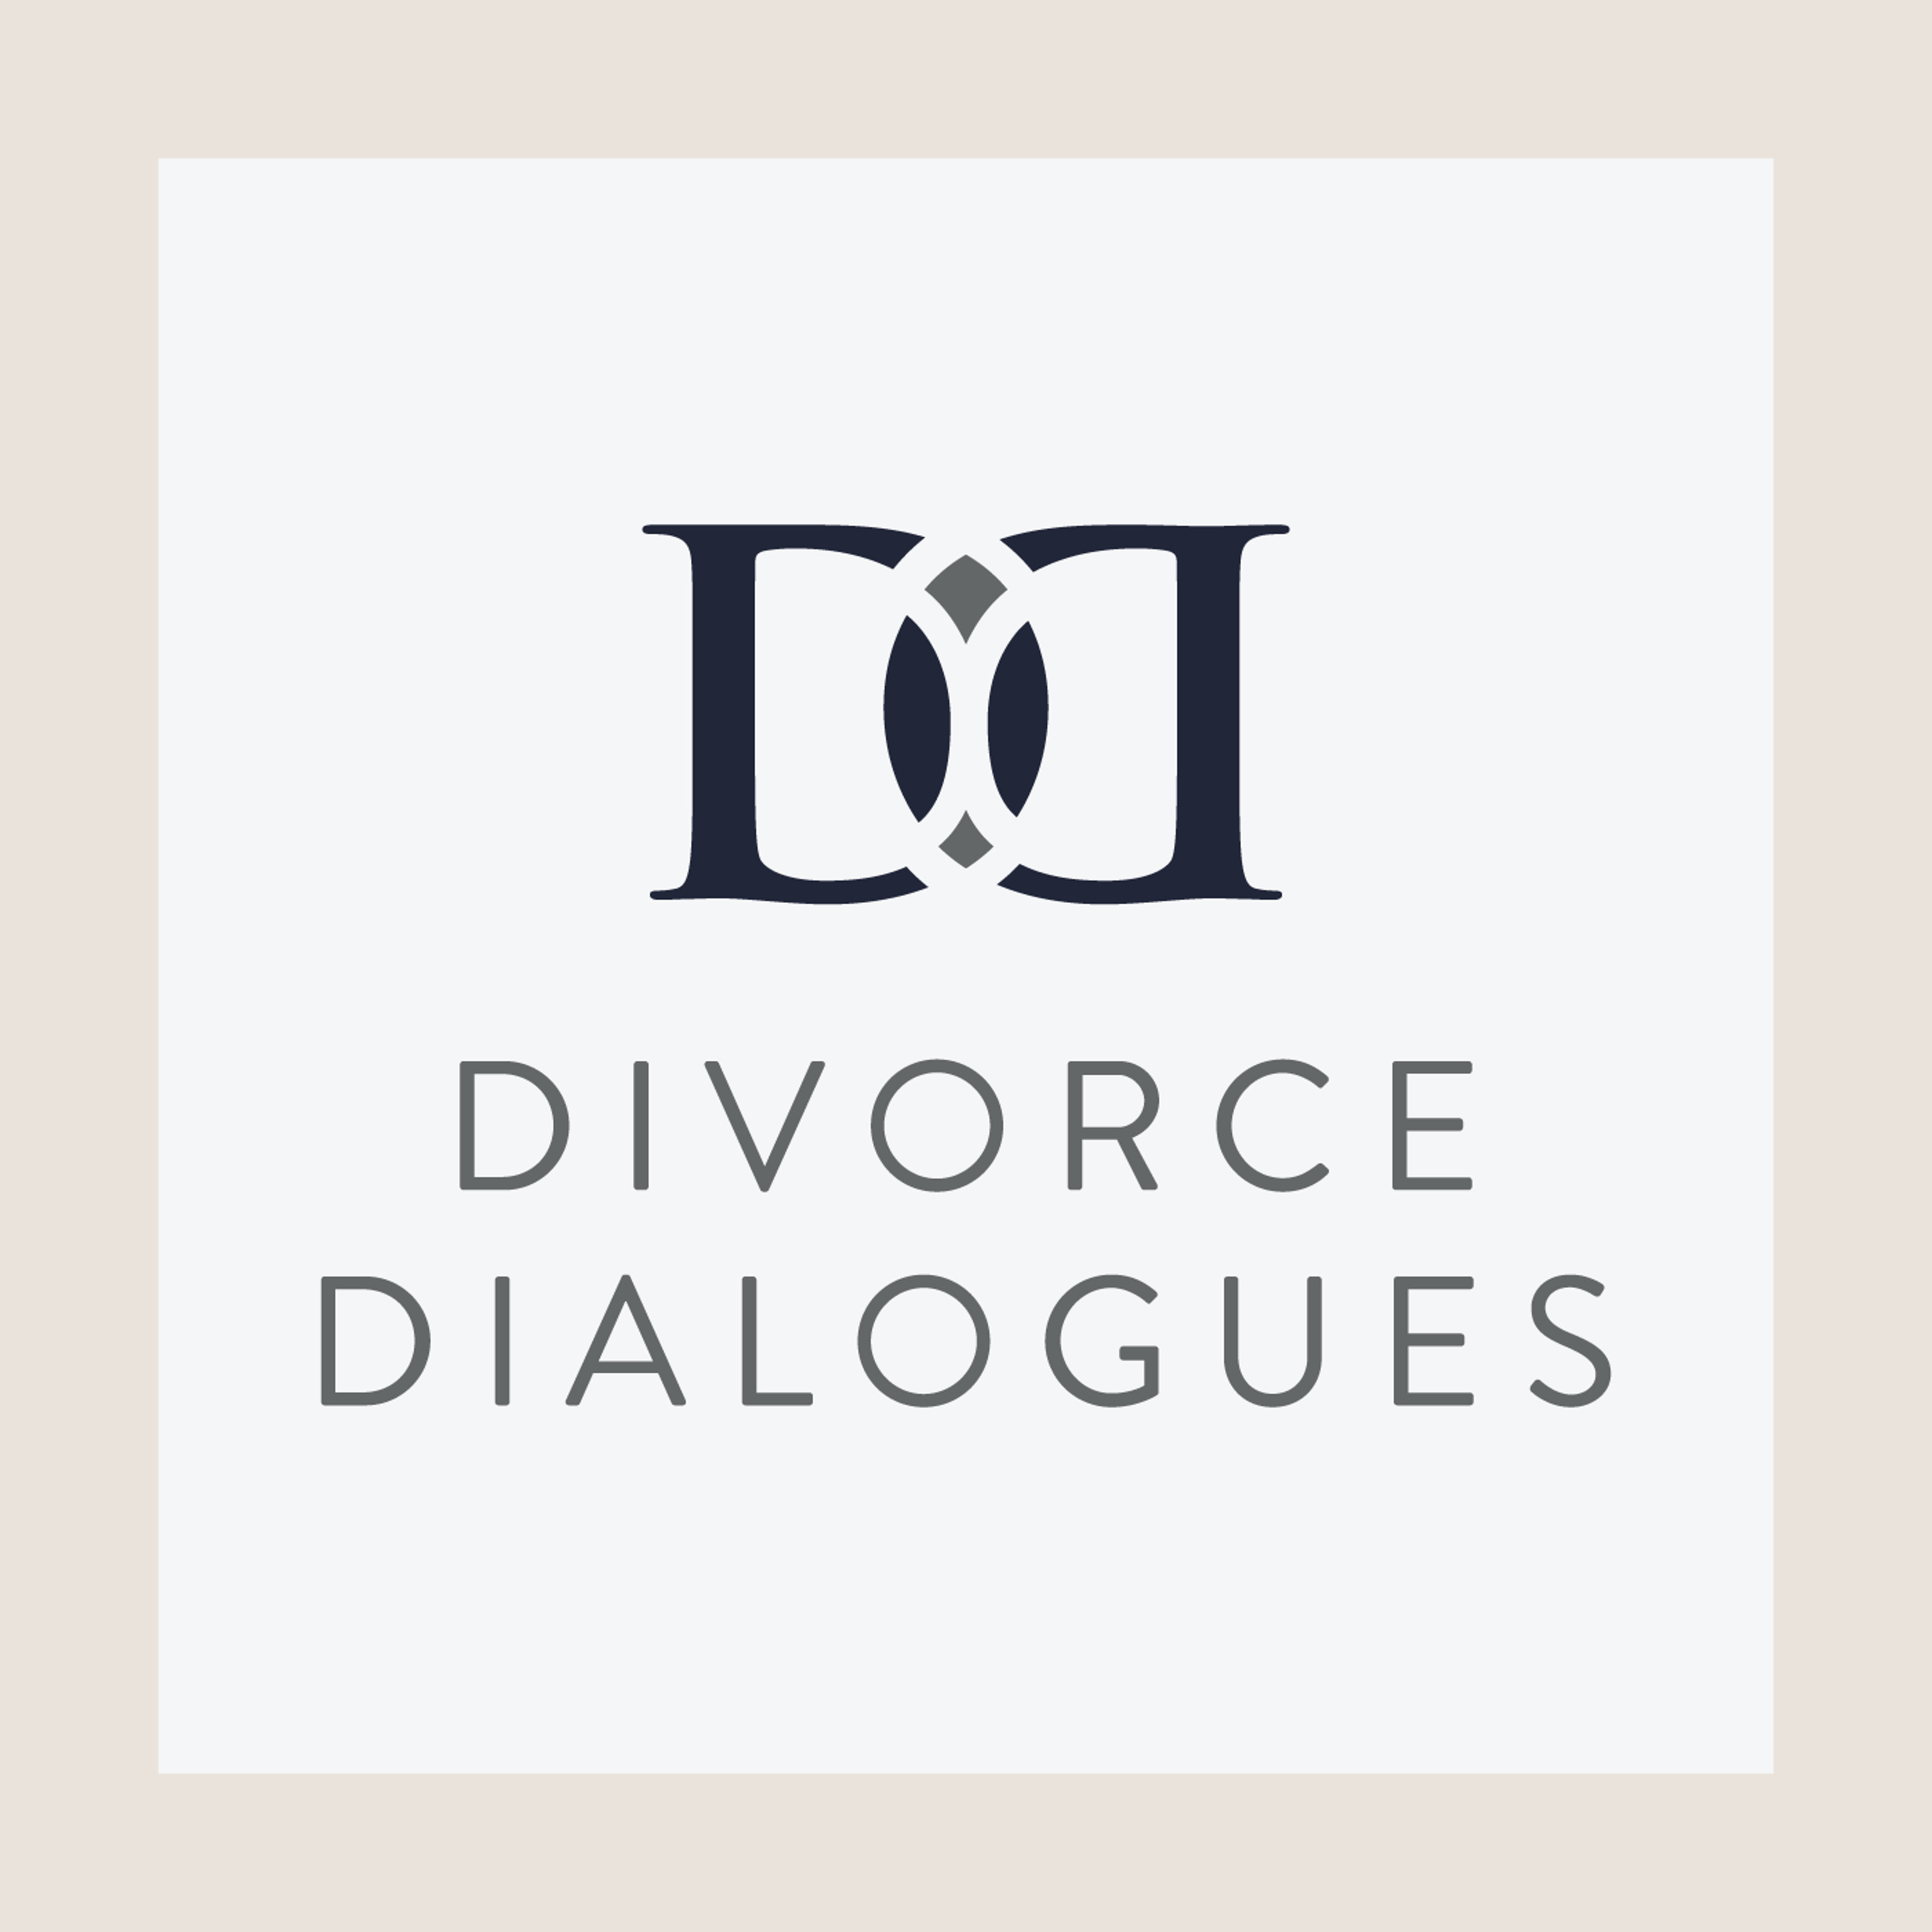 Divorce Dialogues - Profile Styling for Online Daters After Divorce with Alyssa Dineen